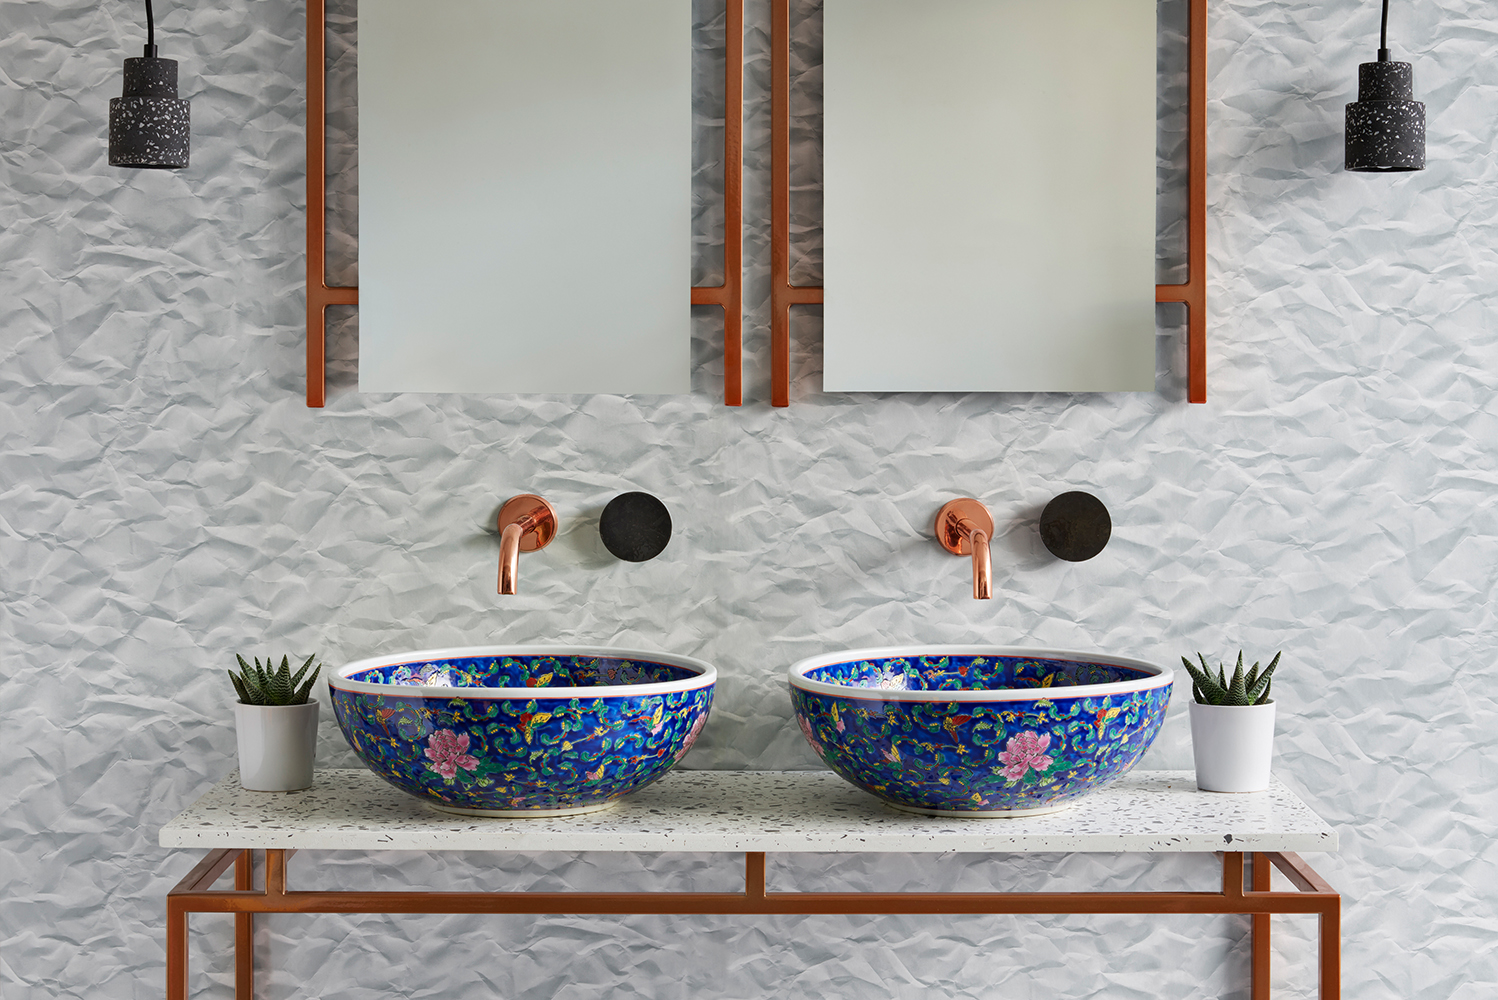 Designed by the founder of the company, interior designer Anna Callis, the basins drew inspiration from Callis's travels, creating her own interpretations of traditional patterns.